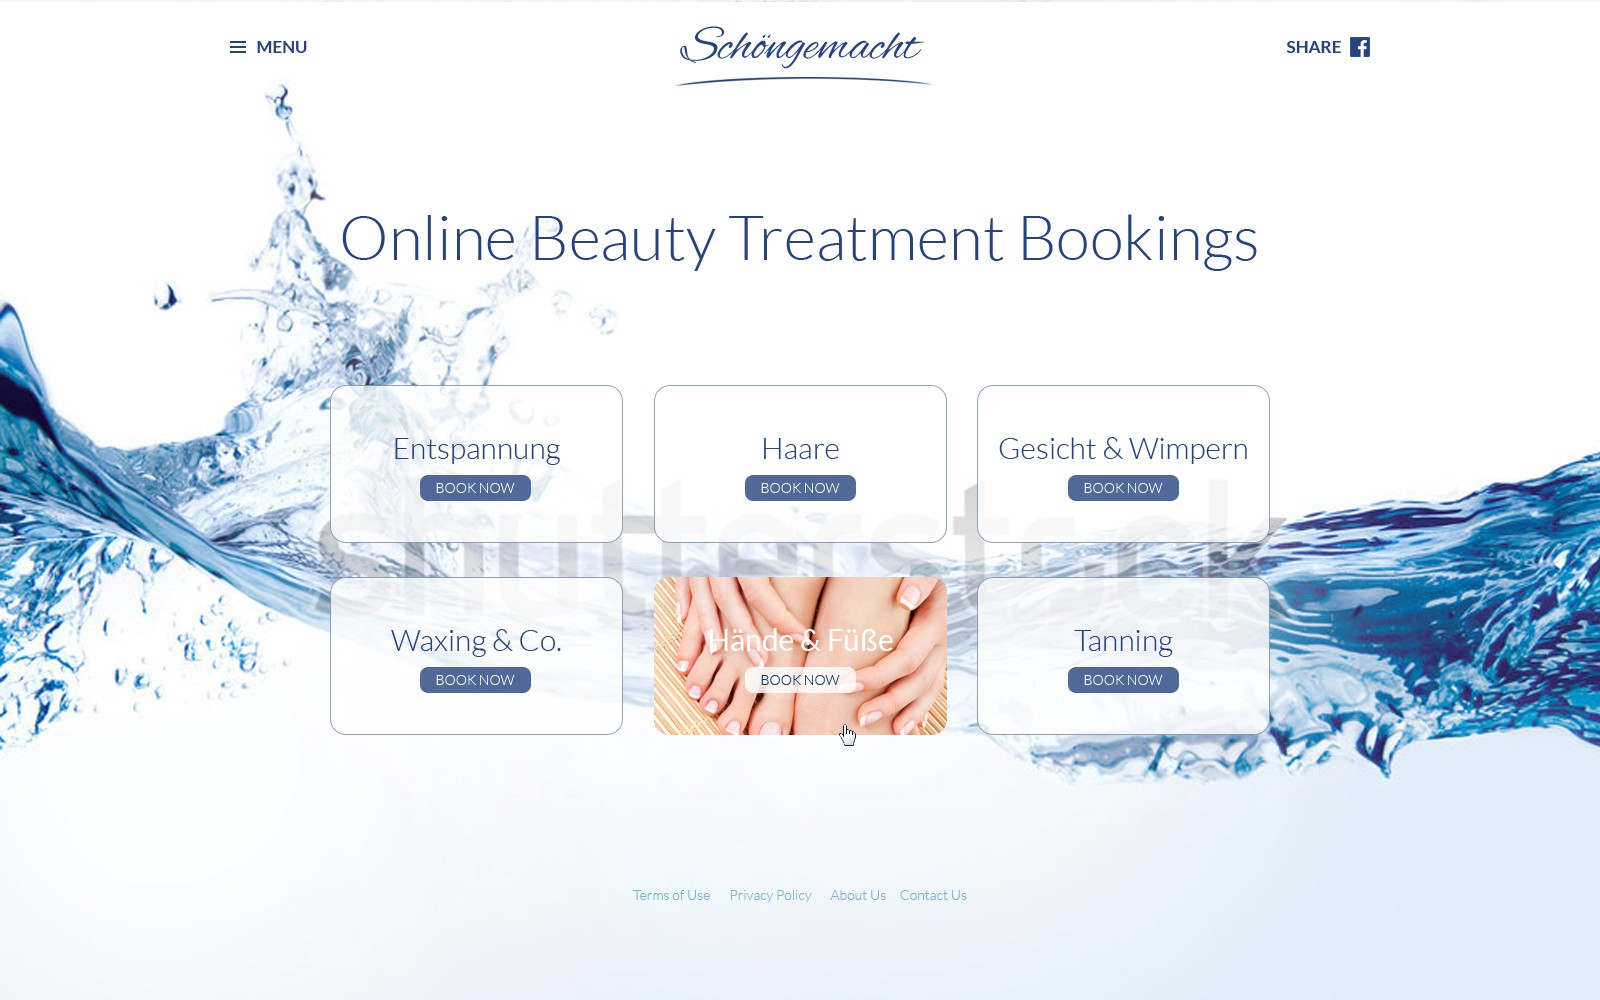 Superior booking website for beauty services!